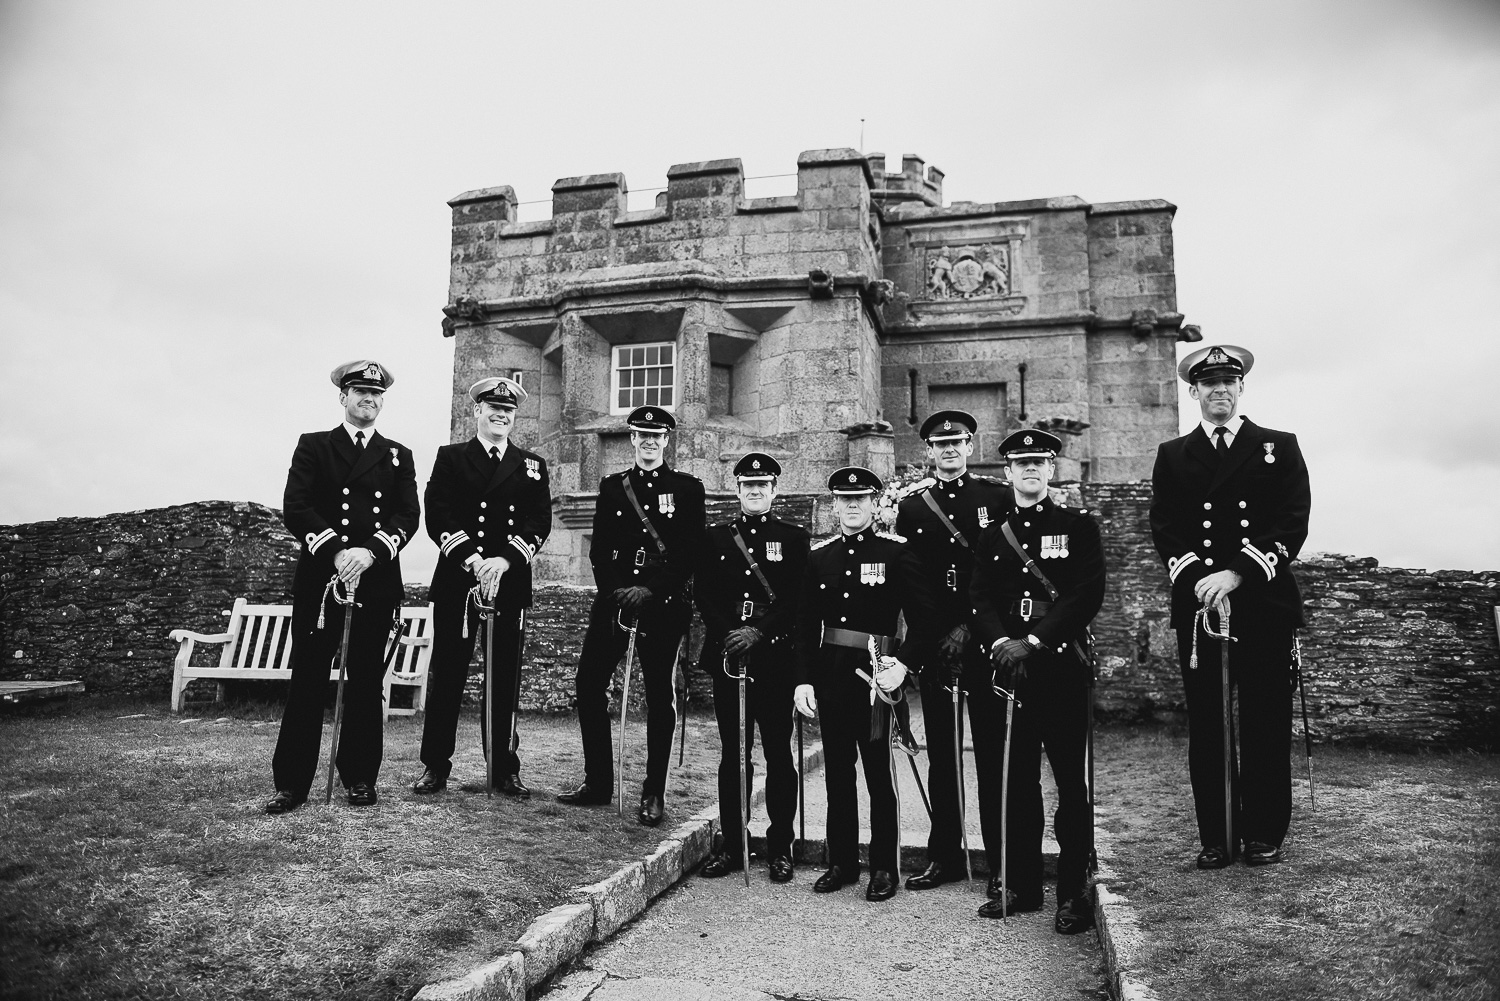 pendennis-castle-wedding-cornwall-photography-4.jpg